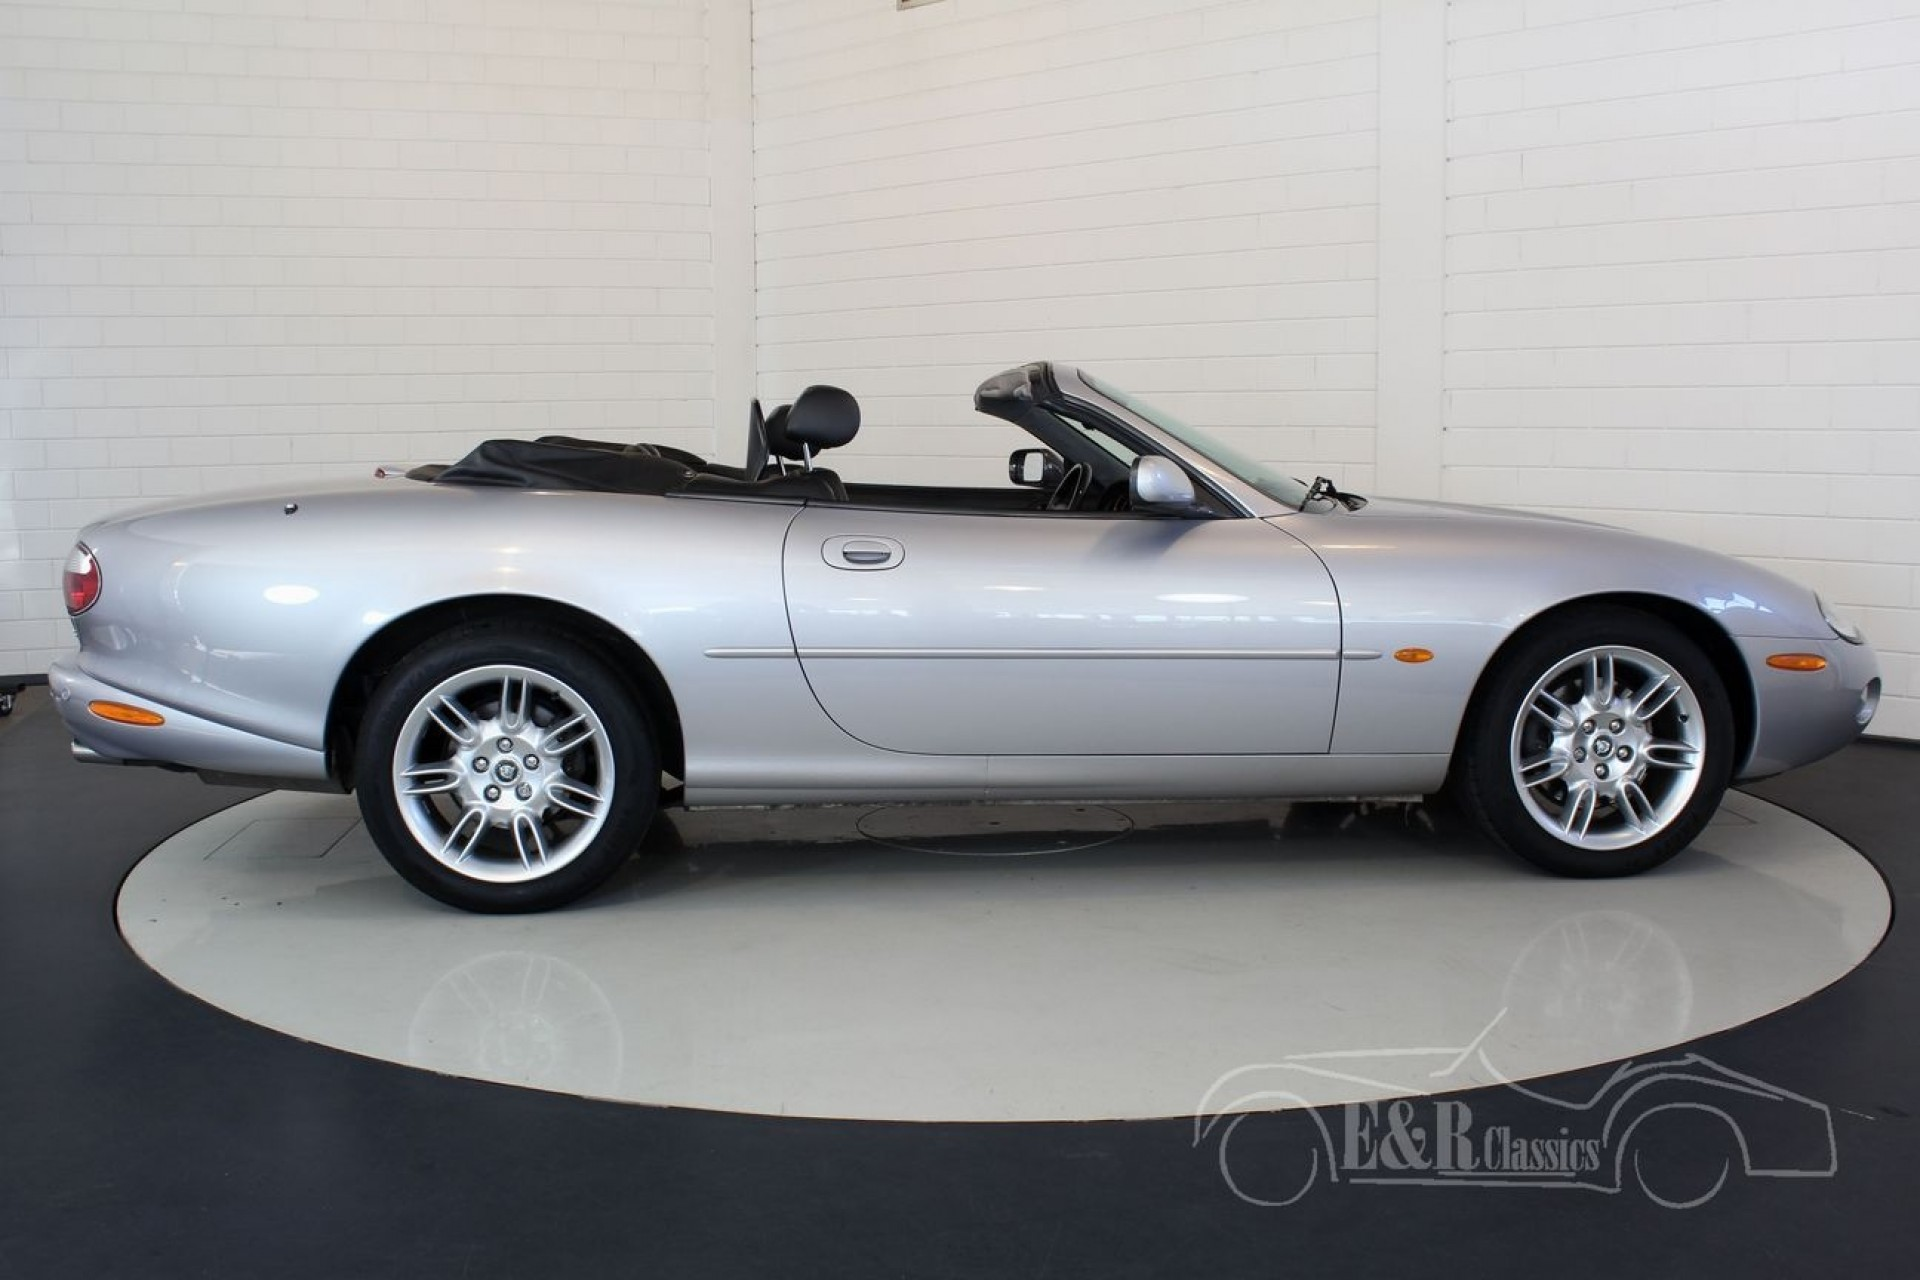 jaguar xk8 cabriolet 2003 vendre erclassics. Black Bedroom Furniture Sets. Home Design Ideas